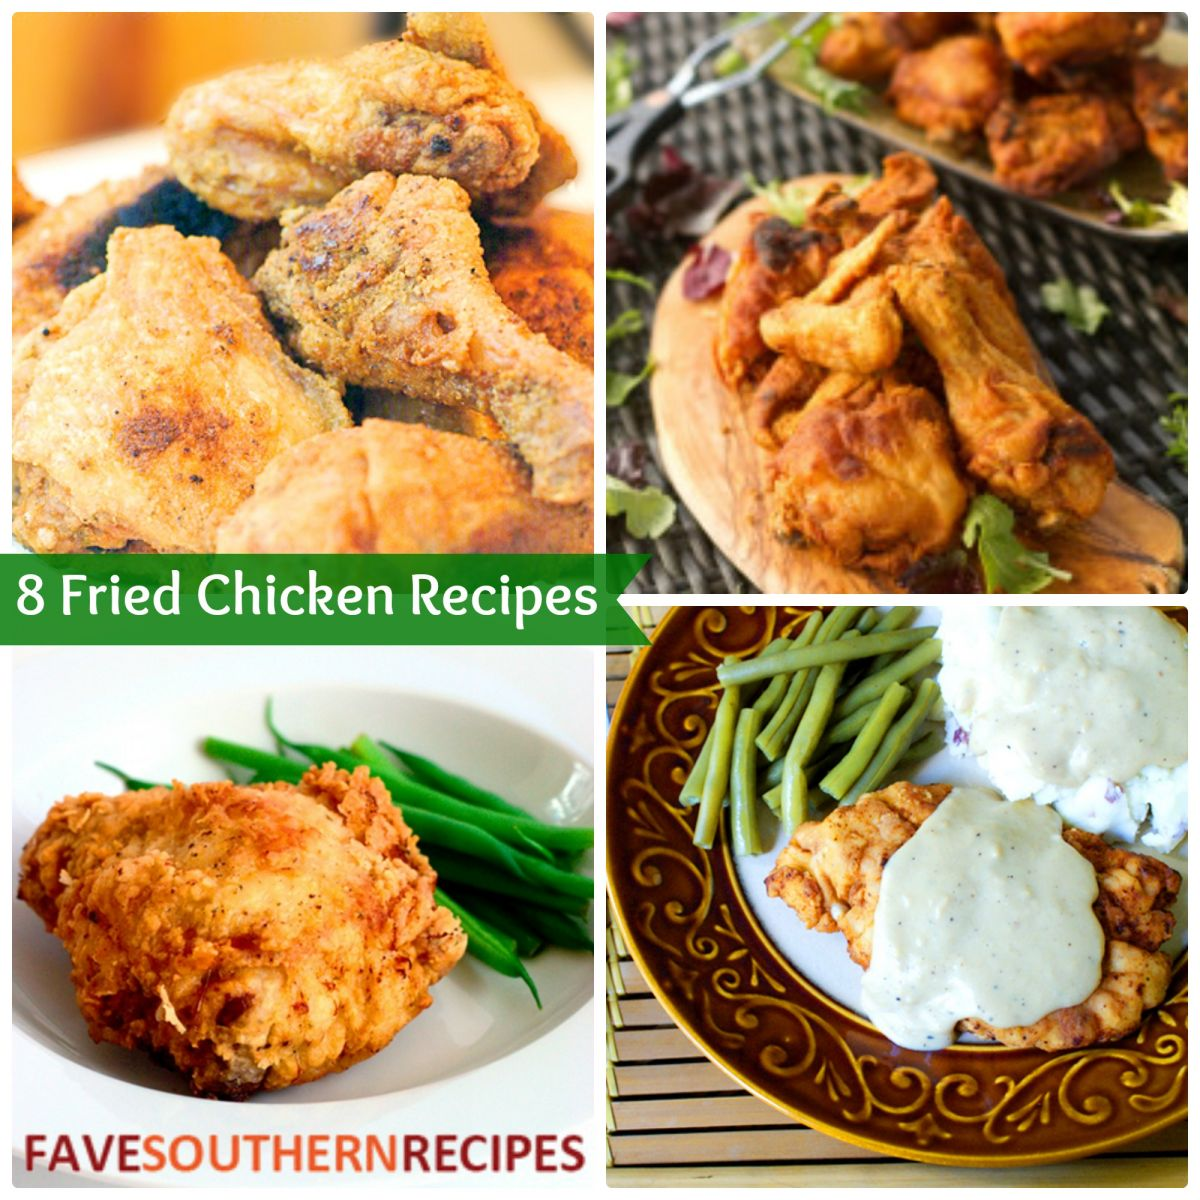 Fried Chicken Recipes | FaveSouthernRecipes.com